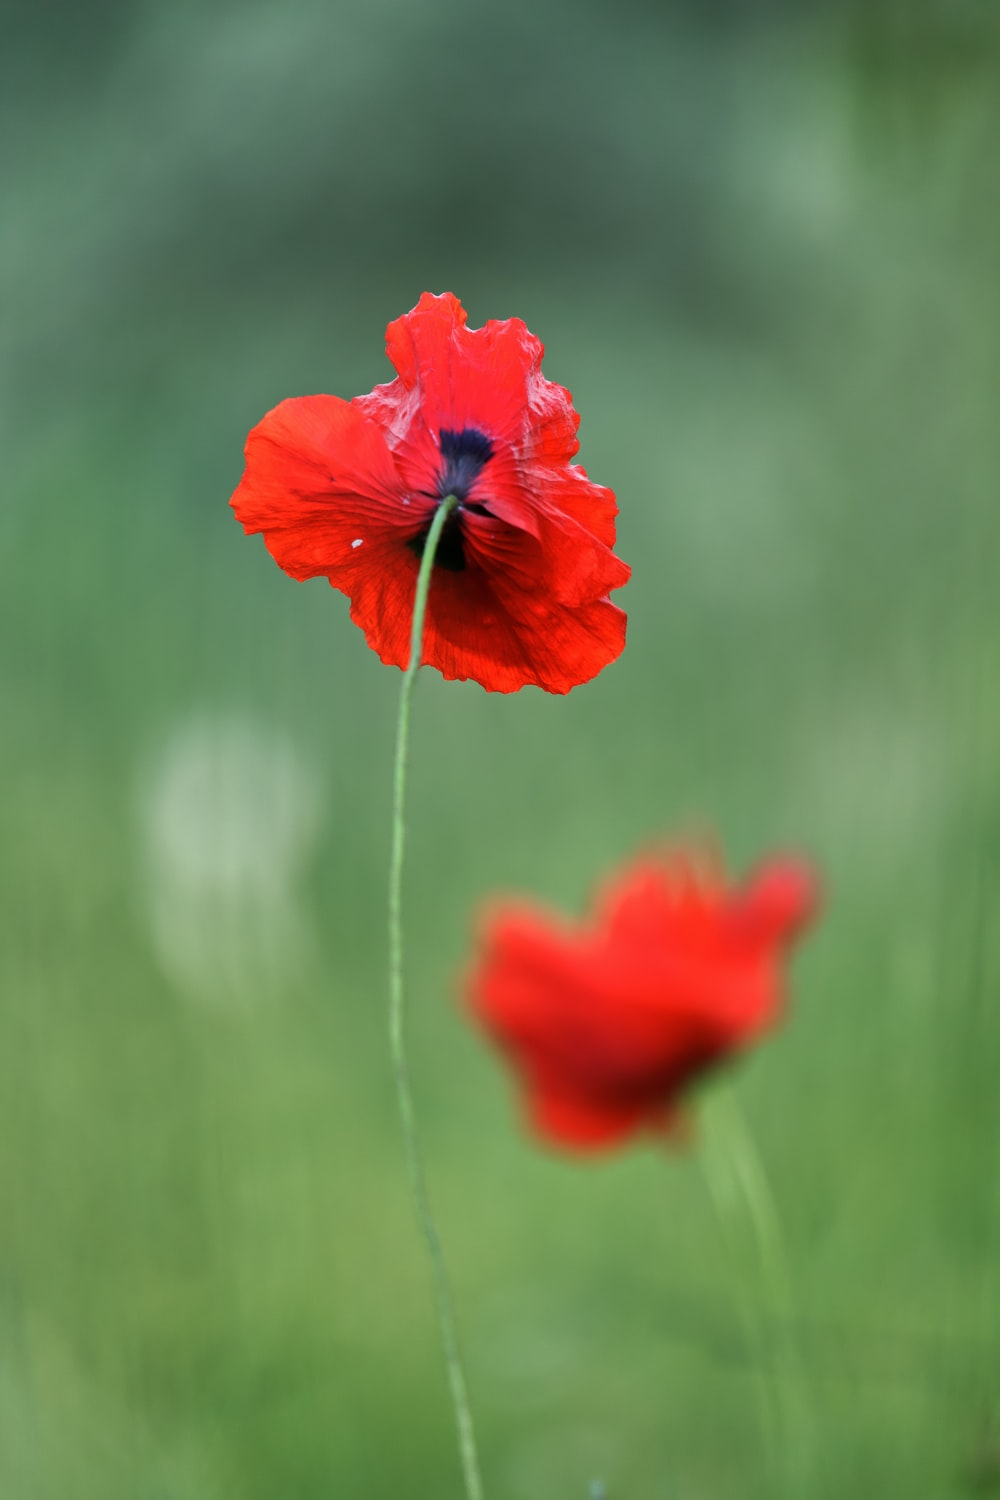 closeup photography of red poppy flower